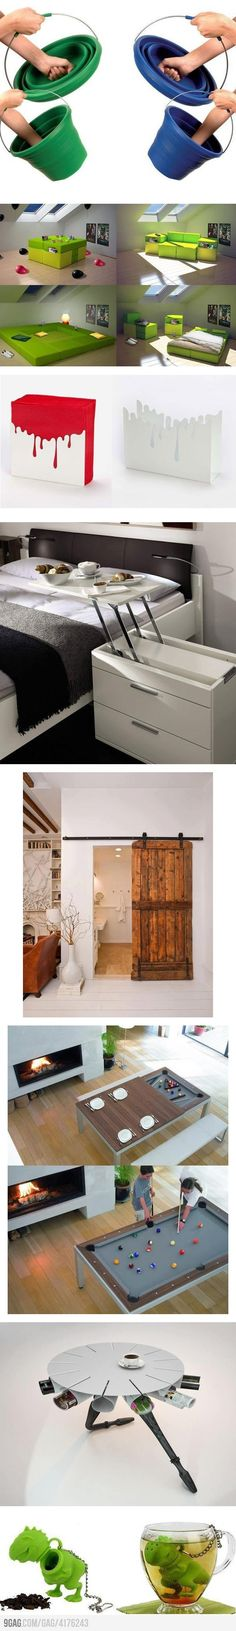 Cool stuff you'll likely want for your home. I want that awesome door and the bedside table.